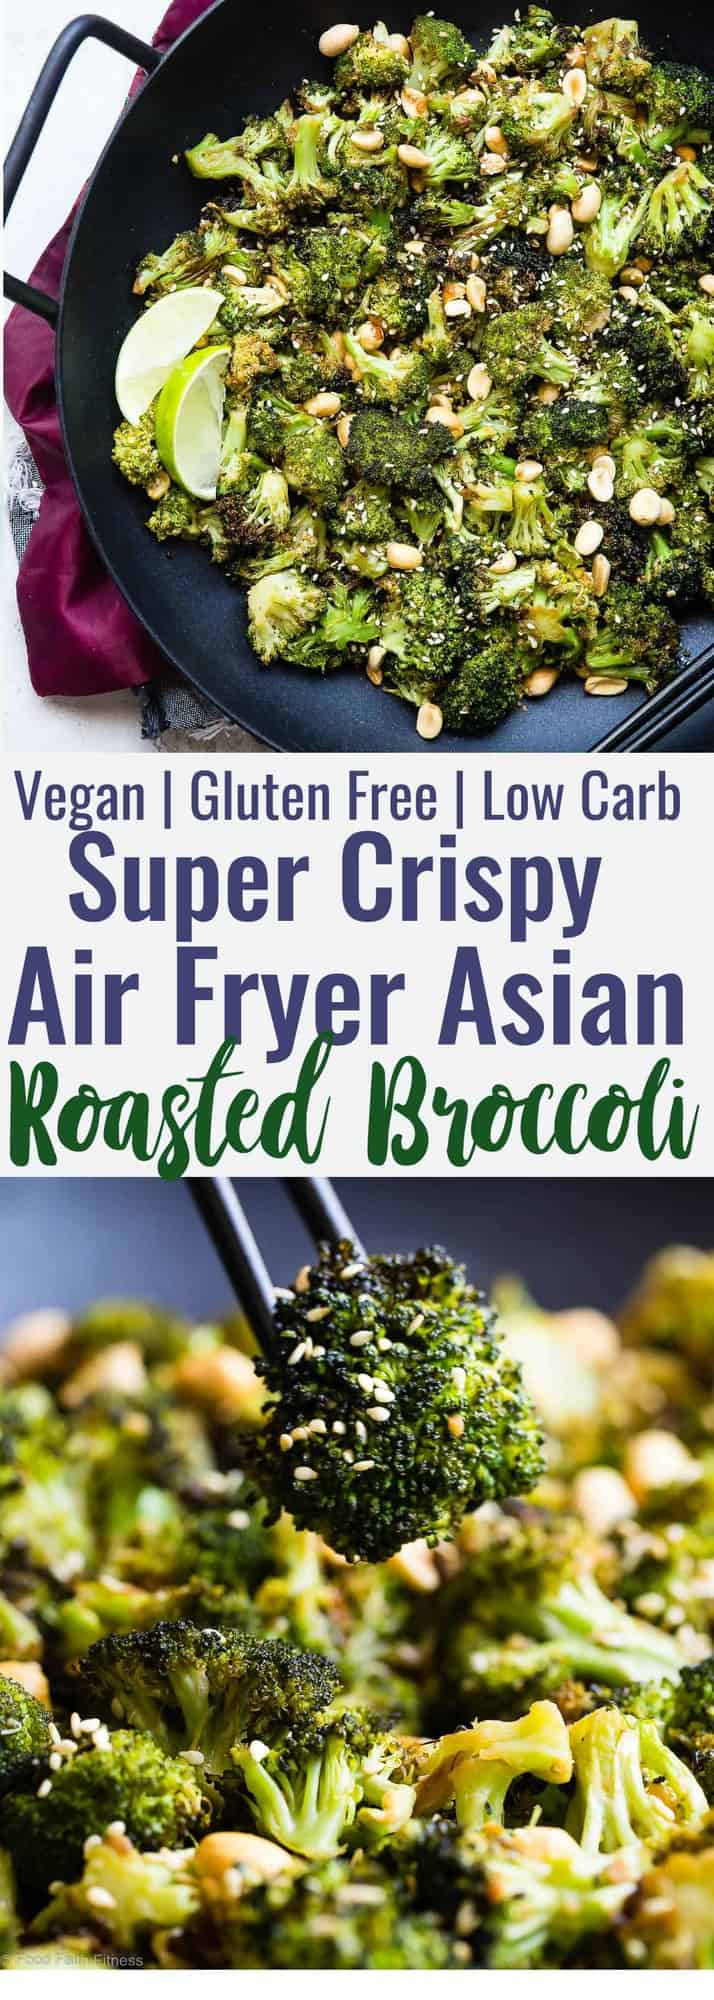 Air Fryer Roasted Asian Broccoli -This healthy, gluten free and low carb Asian broccoli has a spicy, Asian dressing to give a kick to your next meal! Sure to make your family LOVE vegetables and an oven roasted option is included! | #Foodfaithfitness | #Vegan #Healthy #AirFyer #Glutenfree #Lowcarb